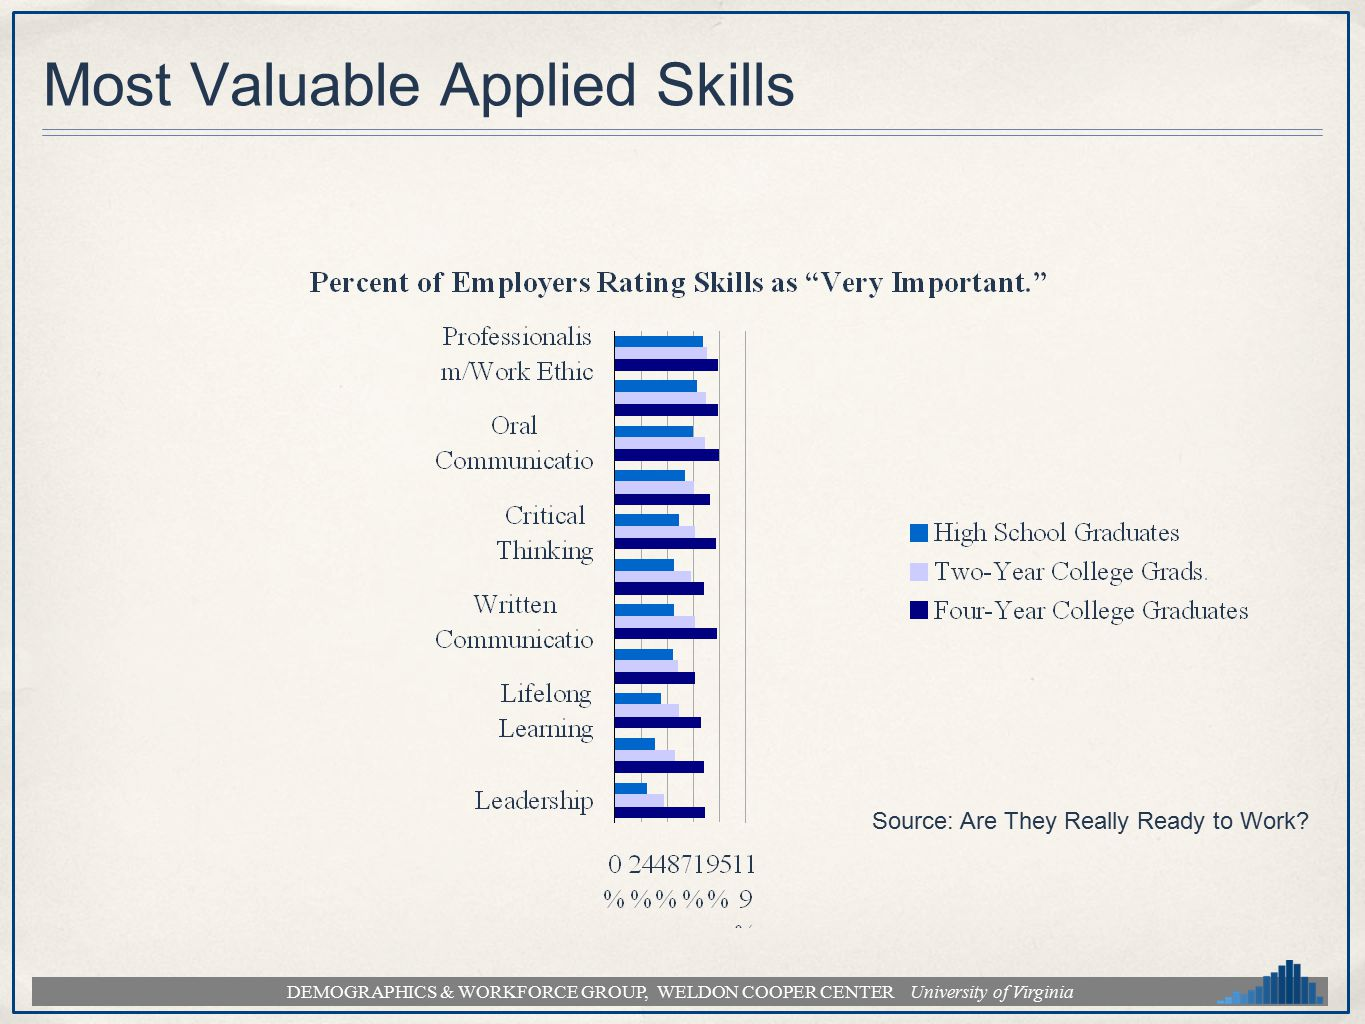 DEMOGRAPHICS & WORKFORCE GROUP, WELDON COOPER CENTER University of Virginia Most Valuable Applied Skills Source: Are They Really Ready to Work?